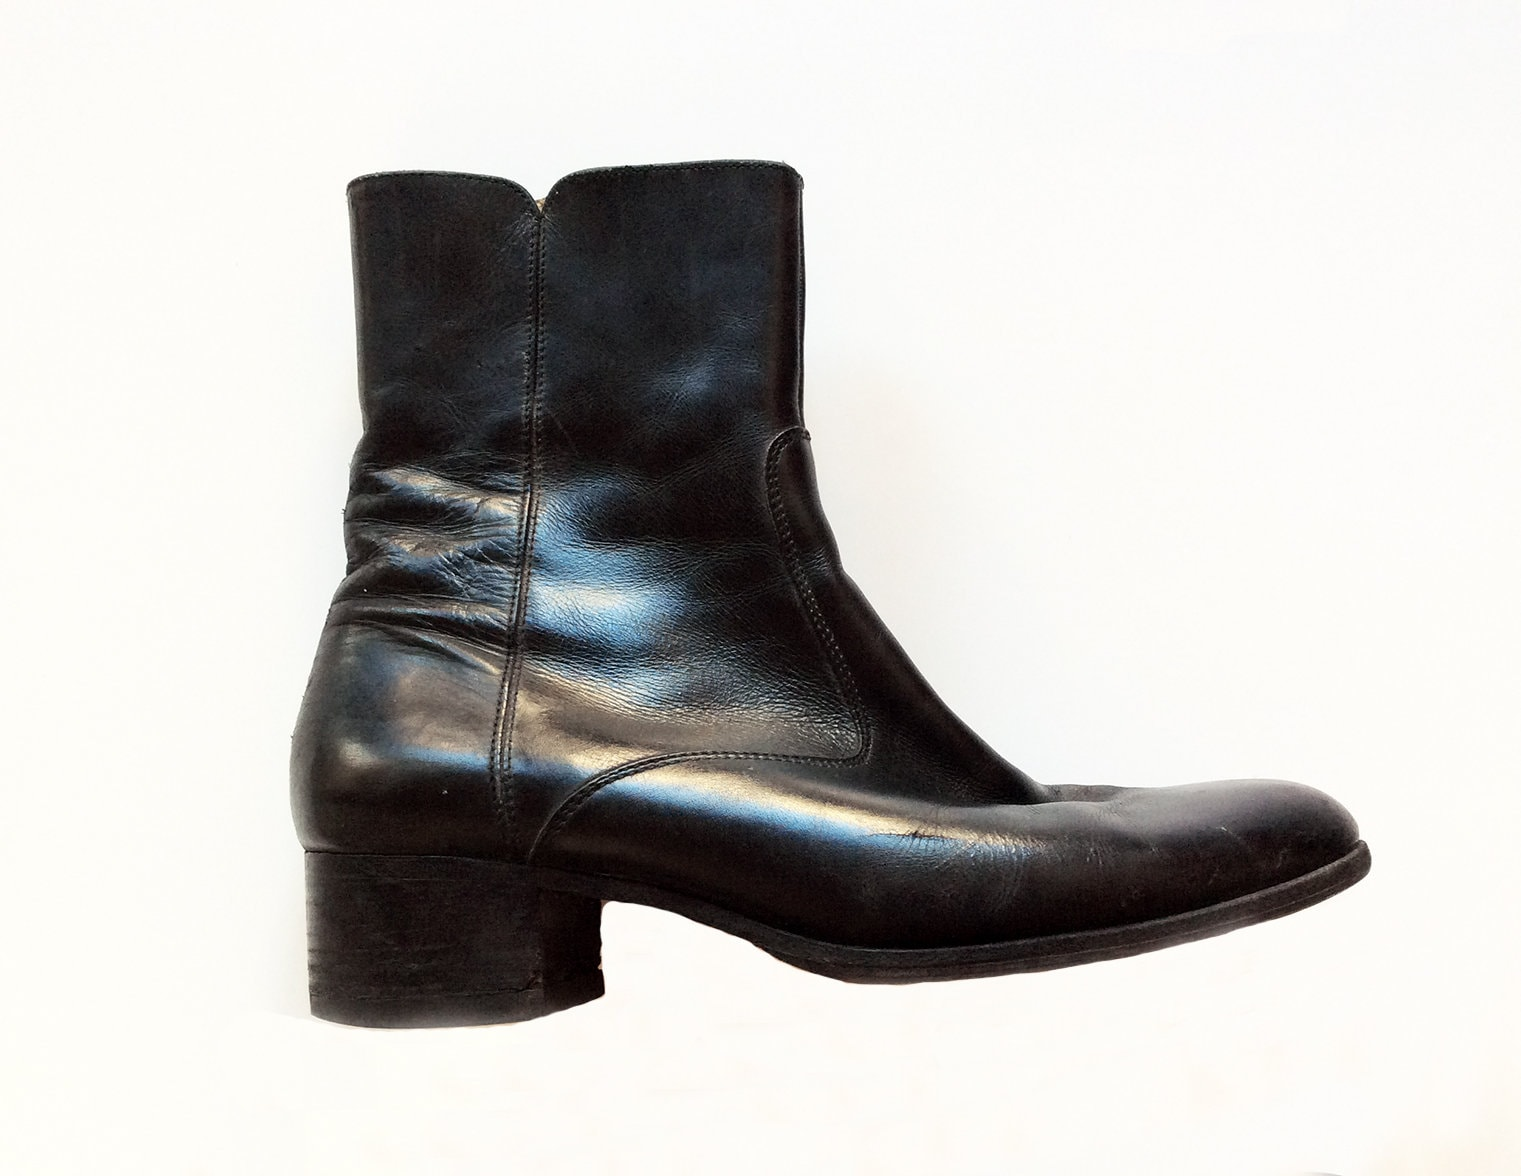 b6b2fcfb8bafc ... Boots cuir vintage - Femme ou homme - Taille 39 39 Taille 970ede ...